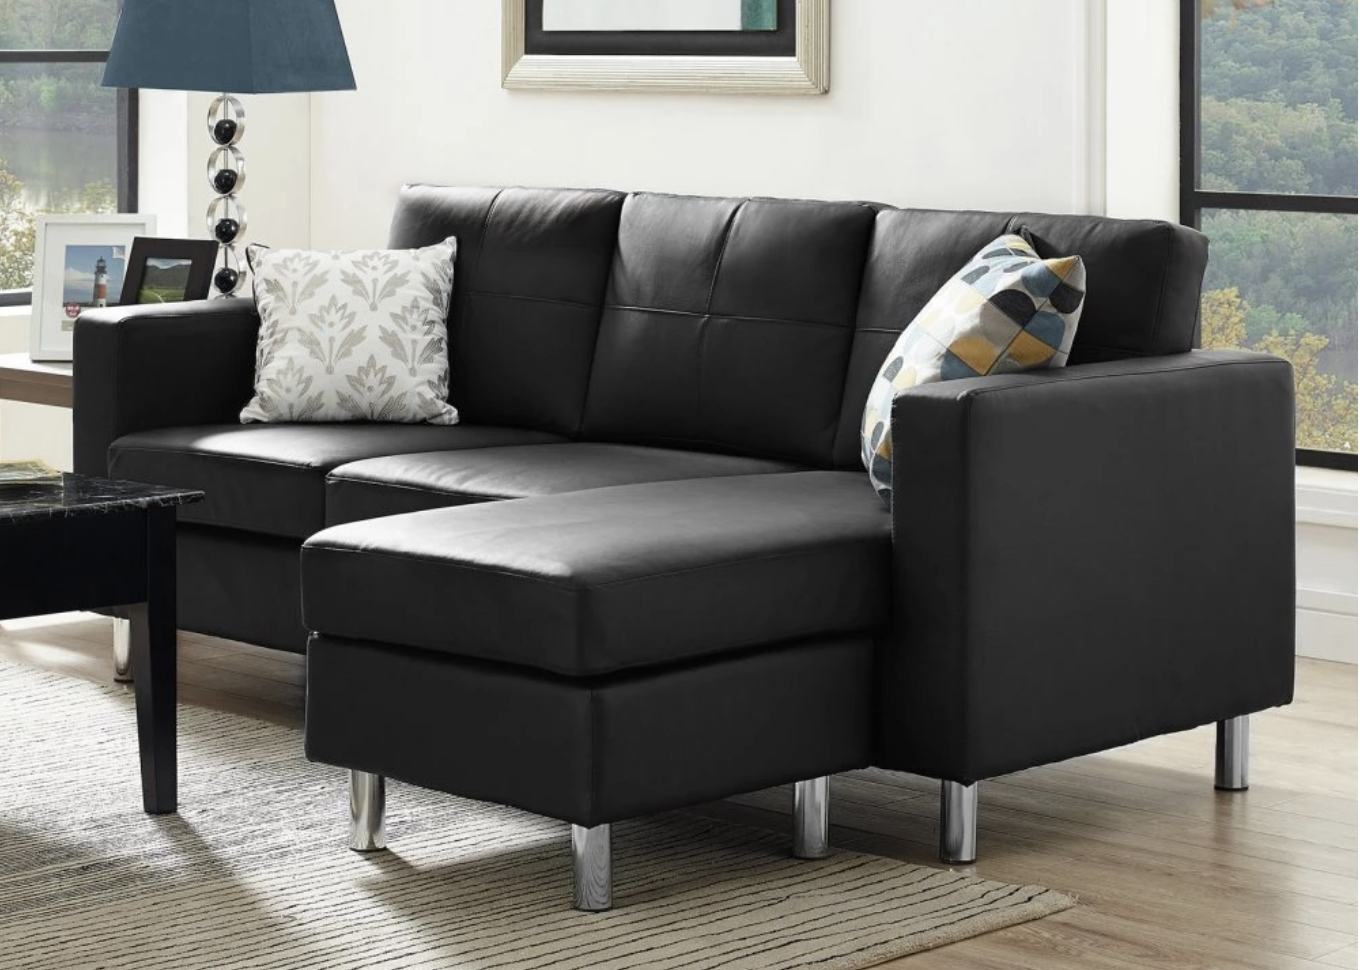 Trendy Inexpensive Sectional Sofas For Small Spaces Inside 75 Modern Sectional Sofas For Small Spaces (2018) (View 19 of 20)